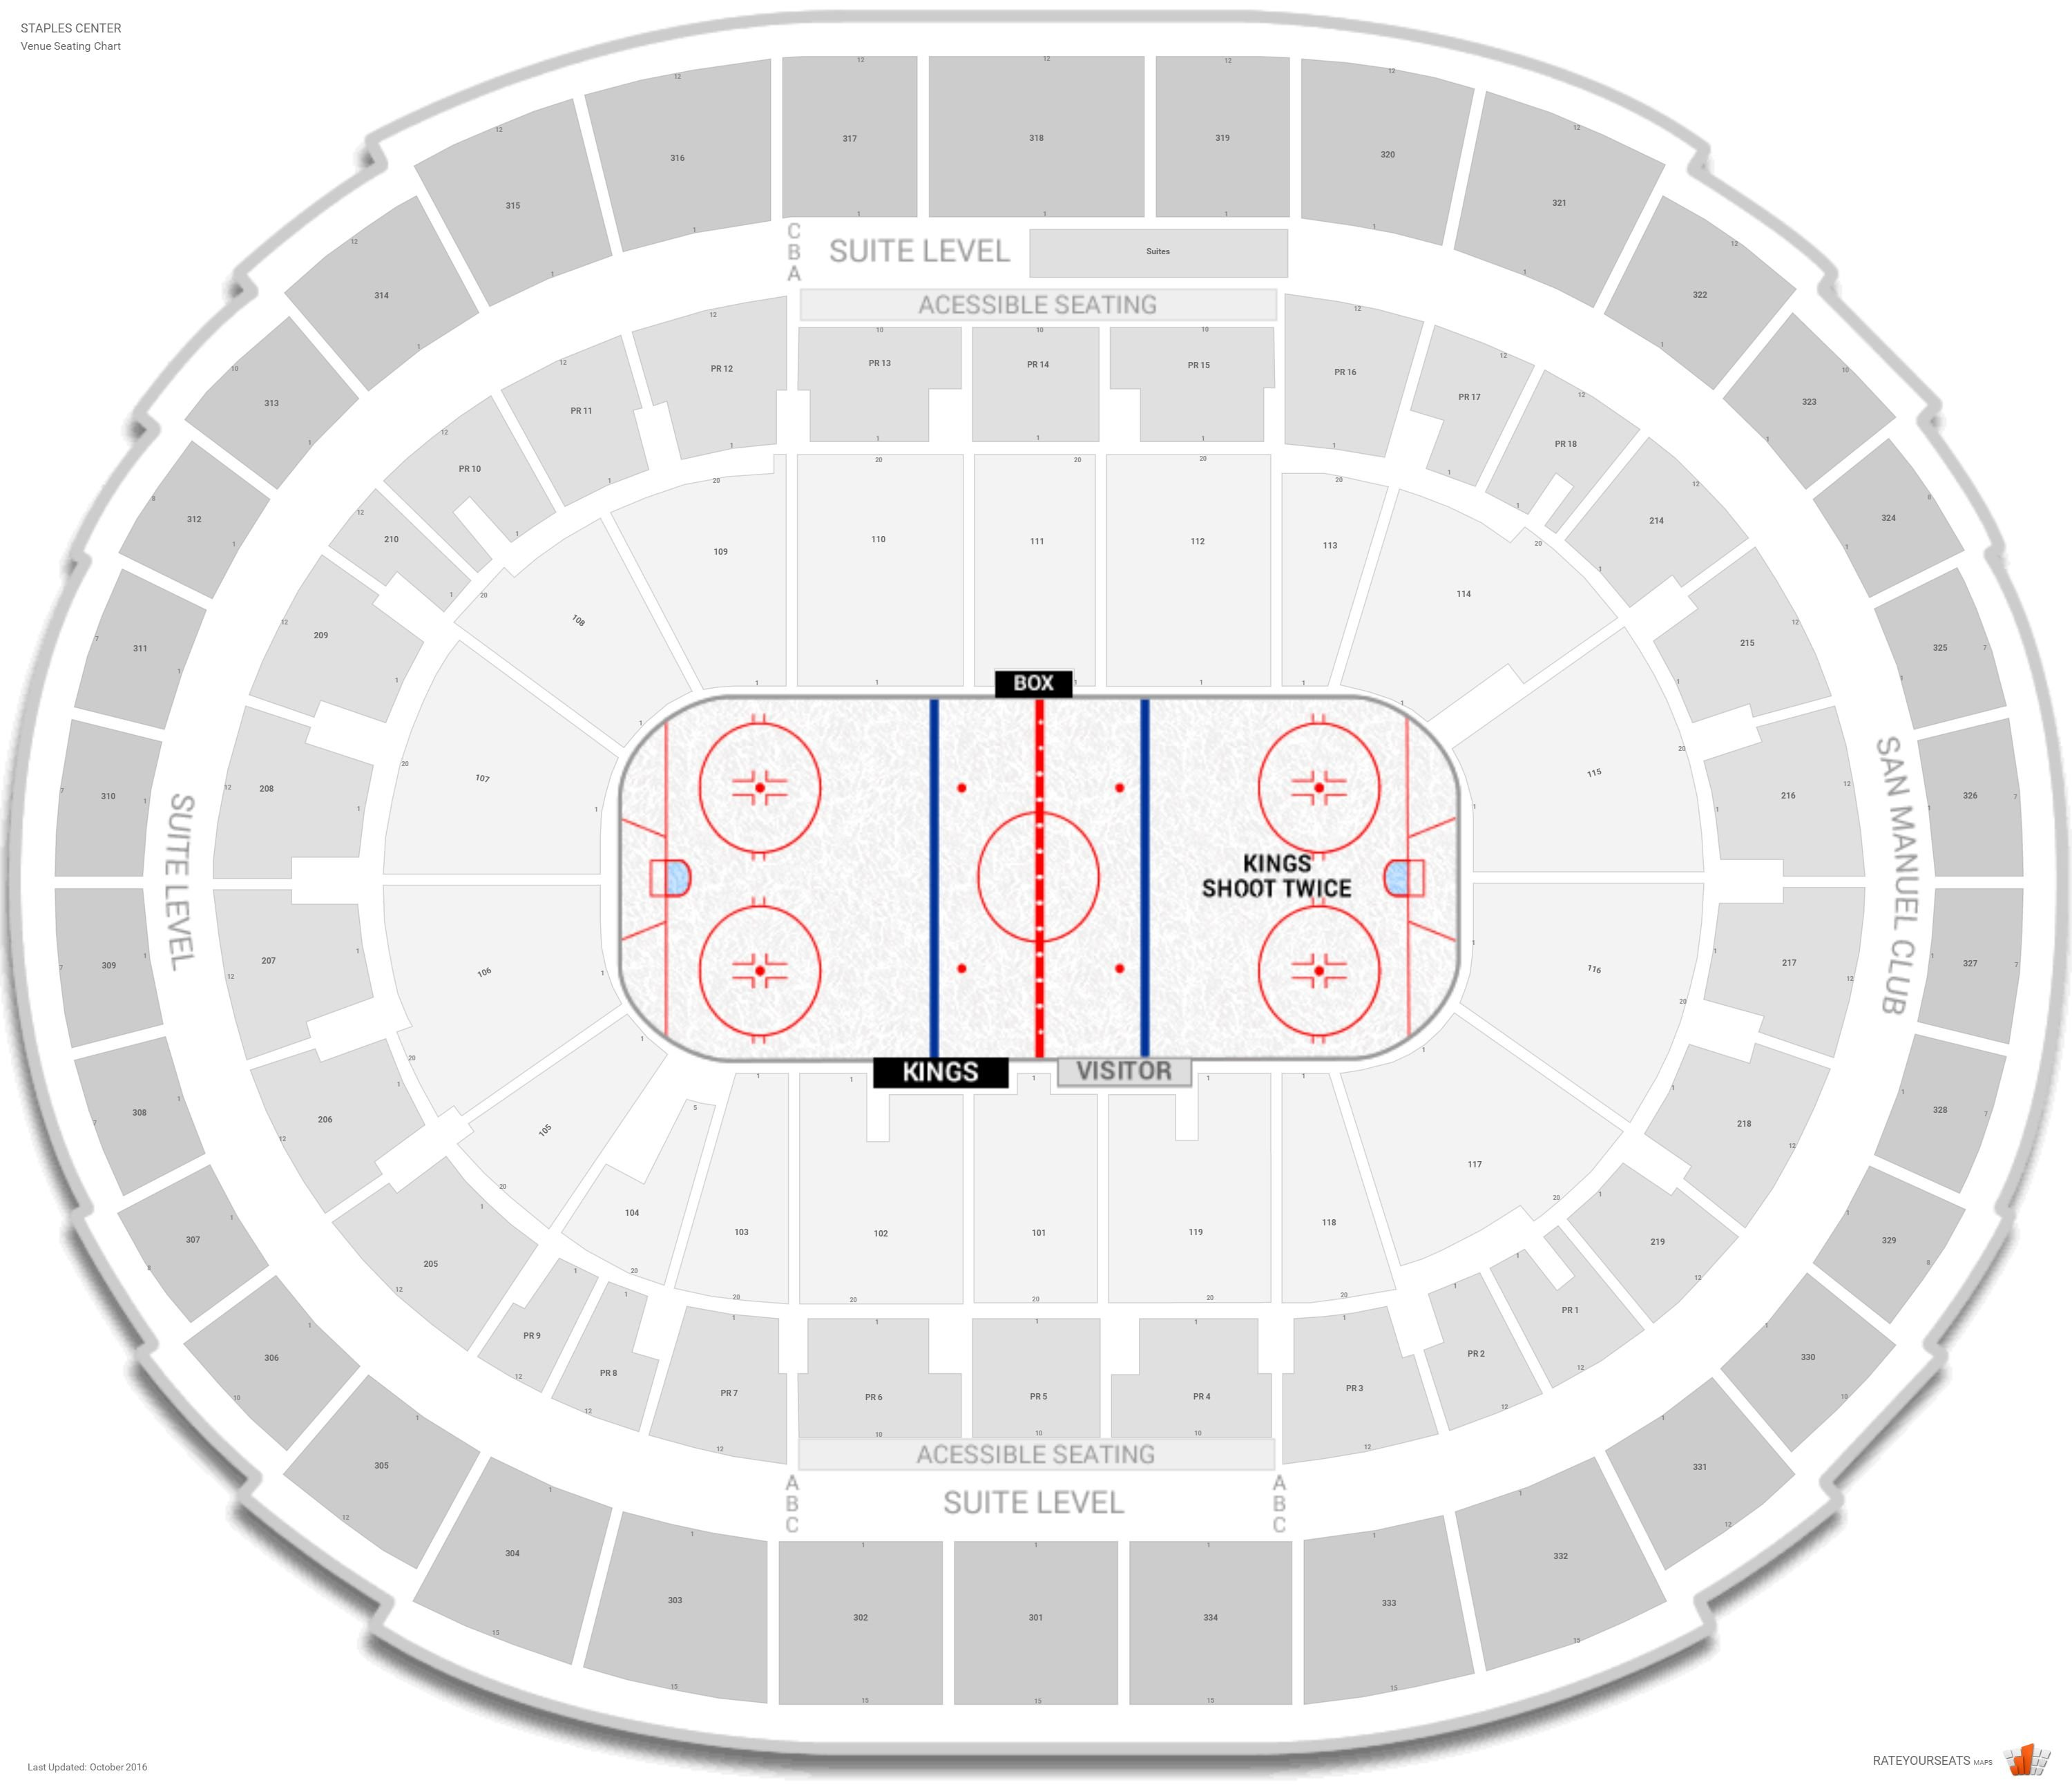 Staples Center Seating Chart With Row Numbers